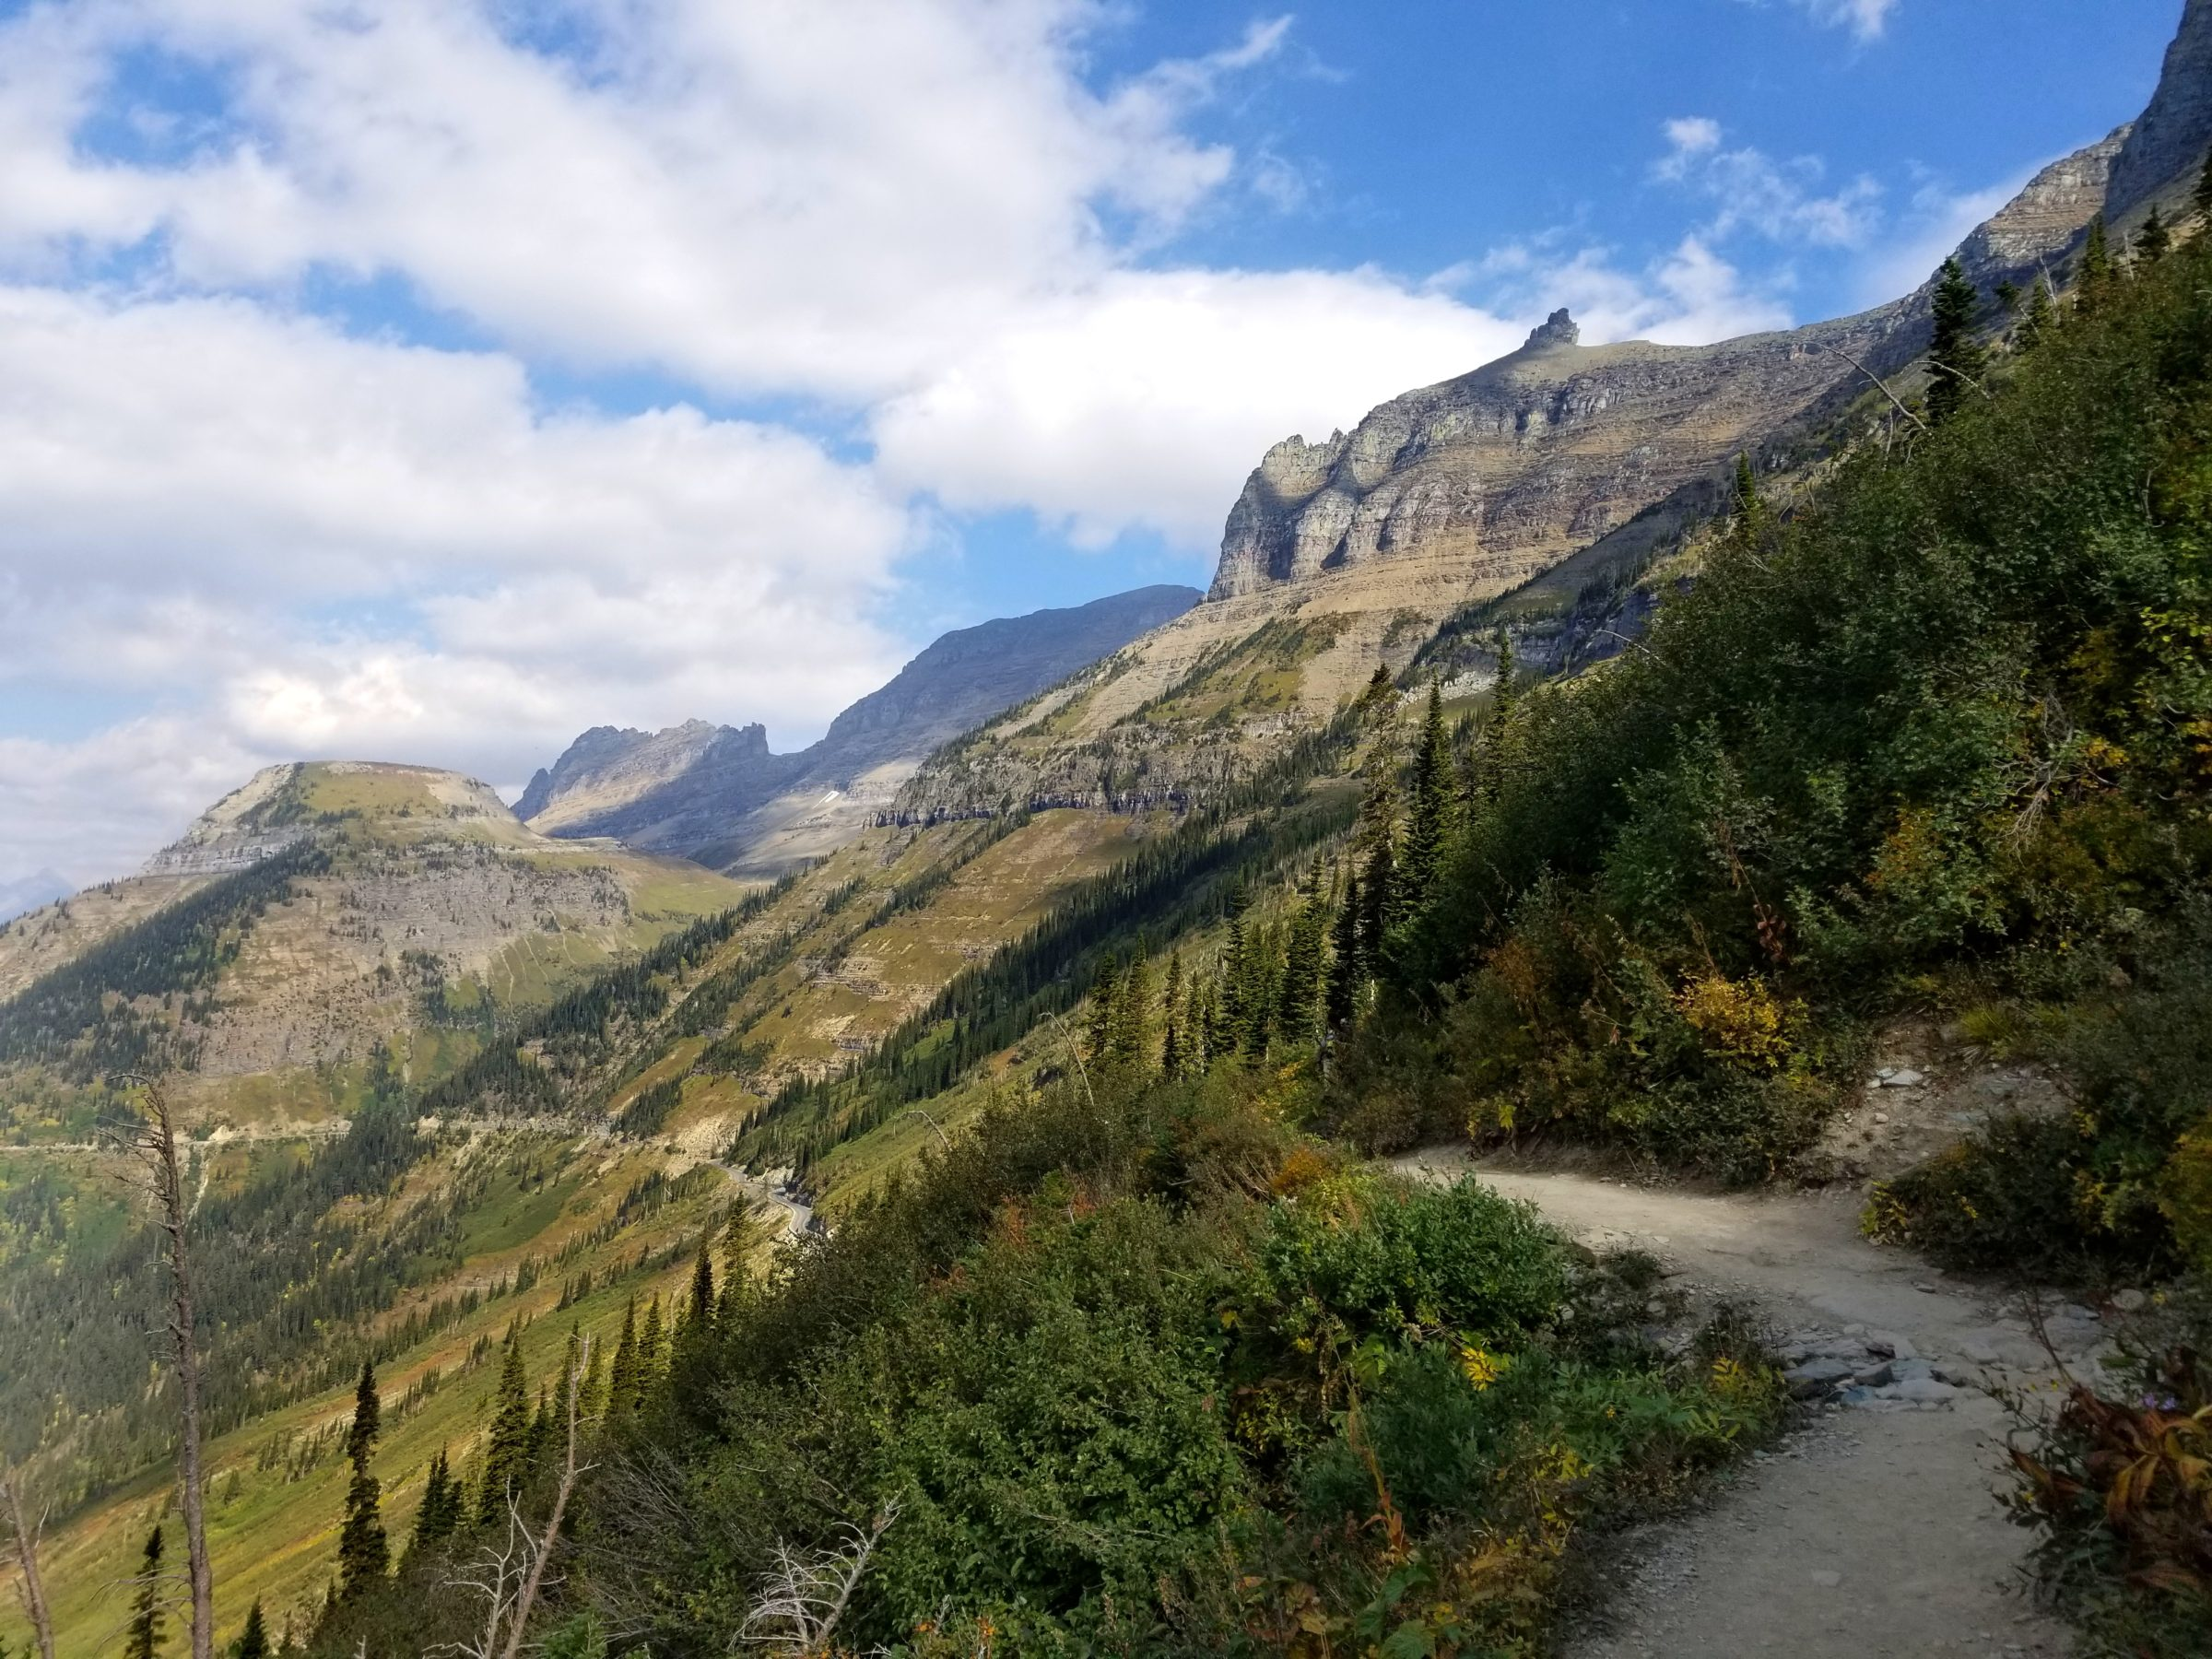 Highline Trail views in Glacier National Park